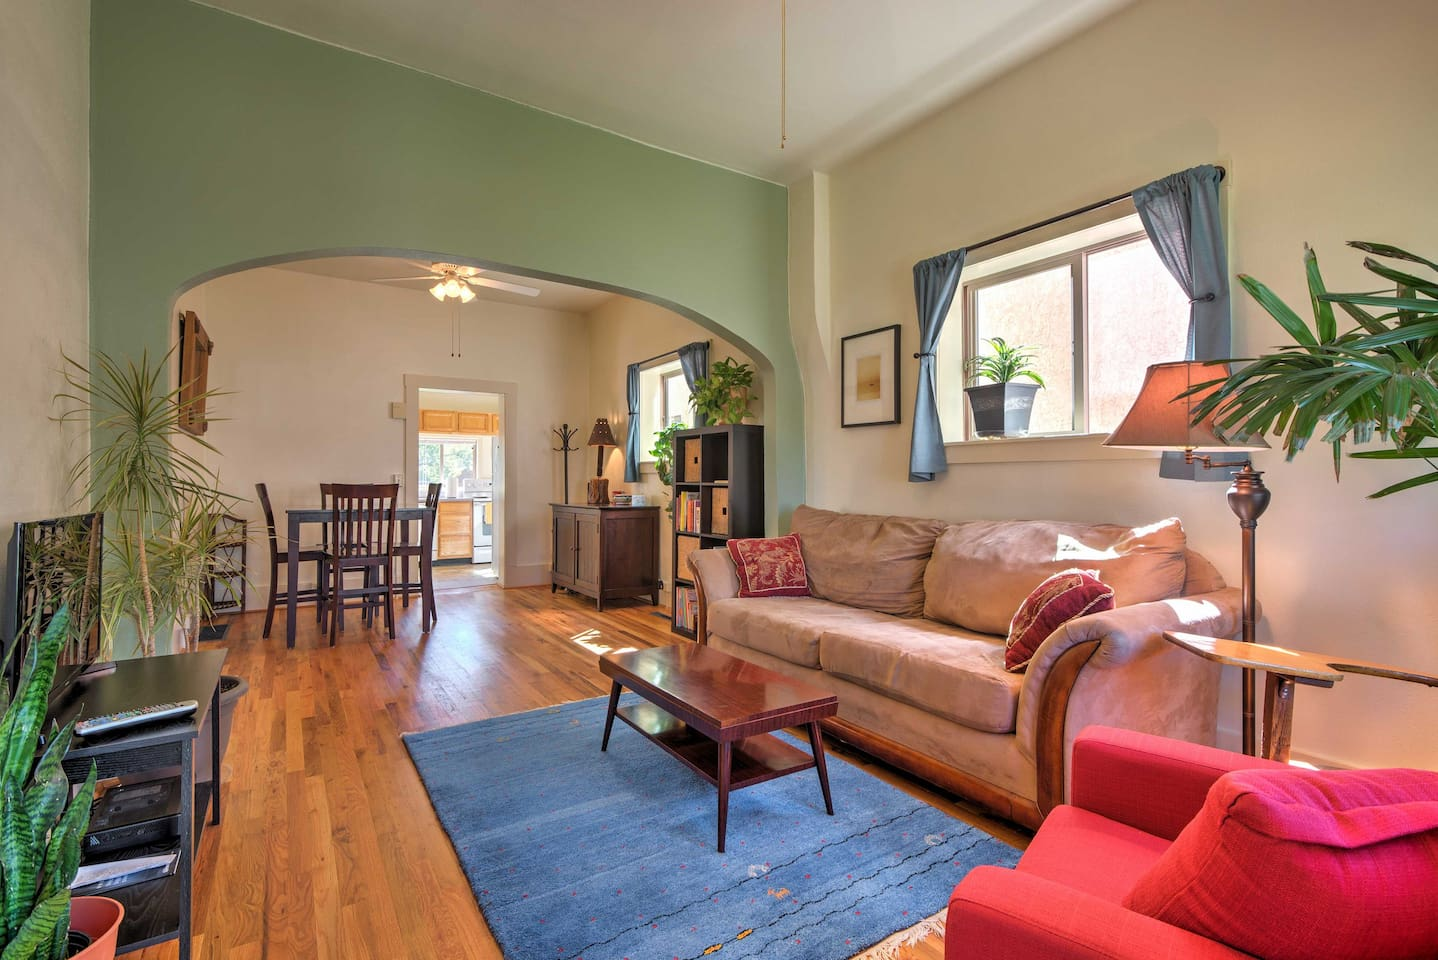 You'll feel right at home in this historic Salida vacation rental house!